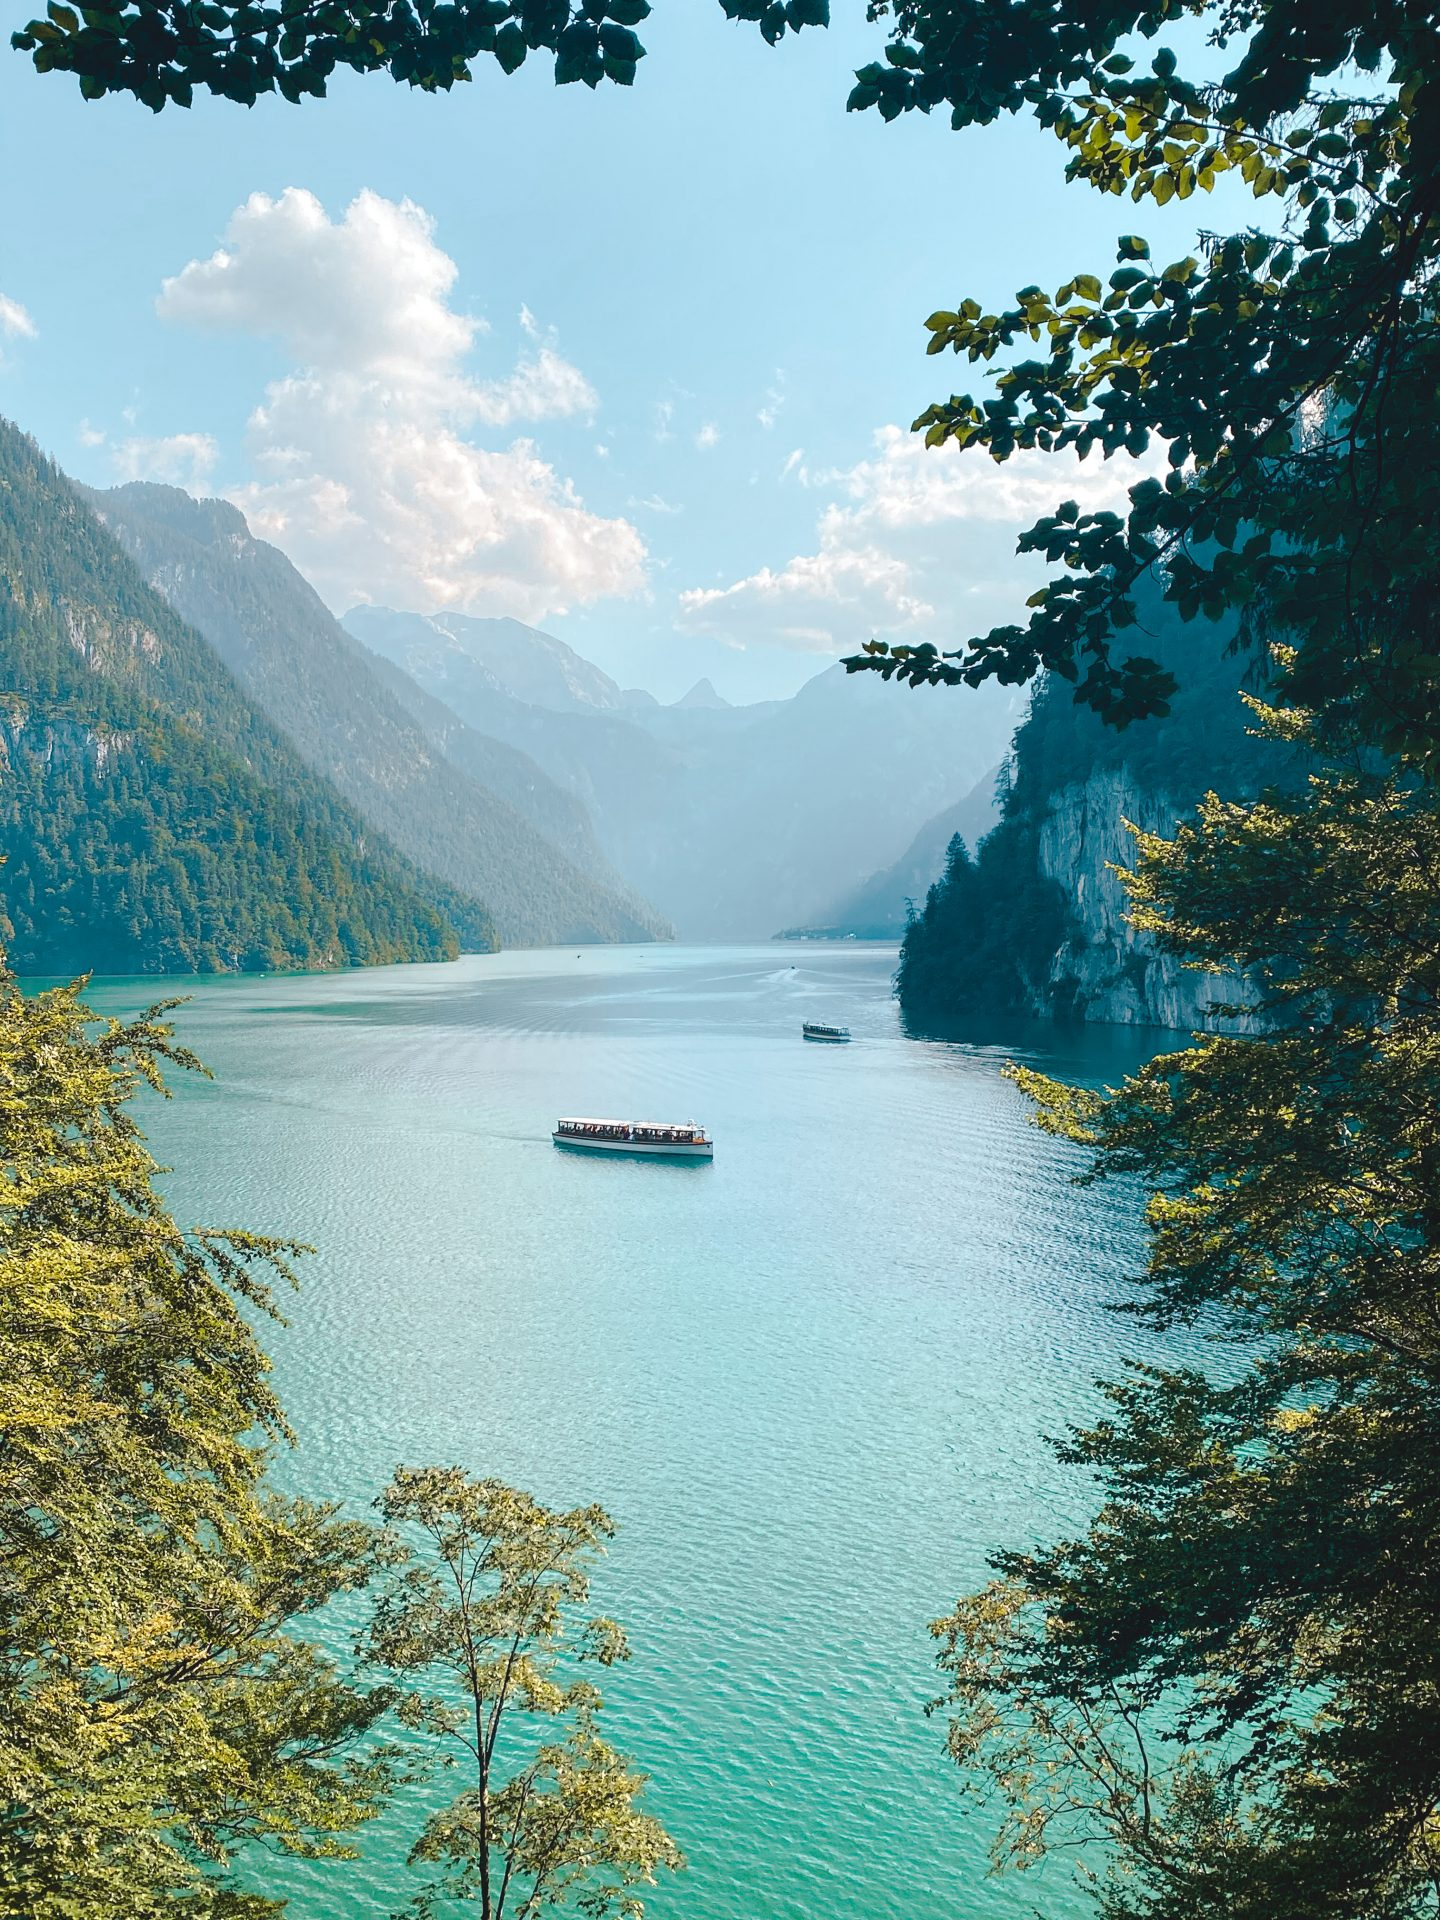 Malerwinkel, a famous spot to look at the Königssee in Germany